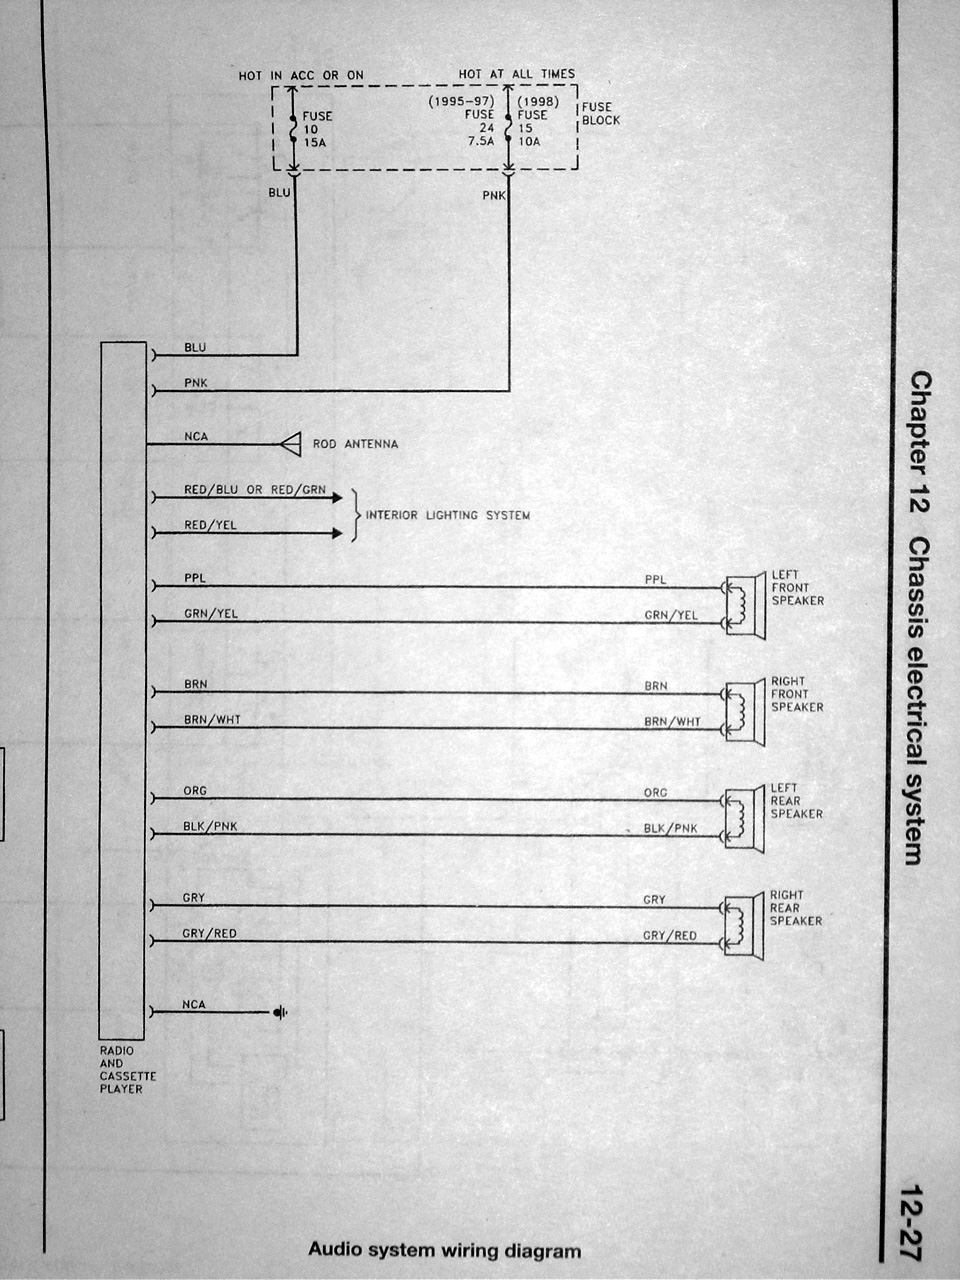 DSC01849?resize=665%2C887 2005 altima 2 5 s radio wiring illumination interior lighting 1998 nissan altima radio wiring diagram at alyssarenee.co